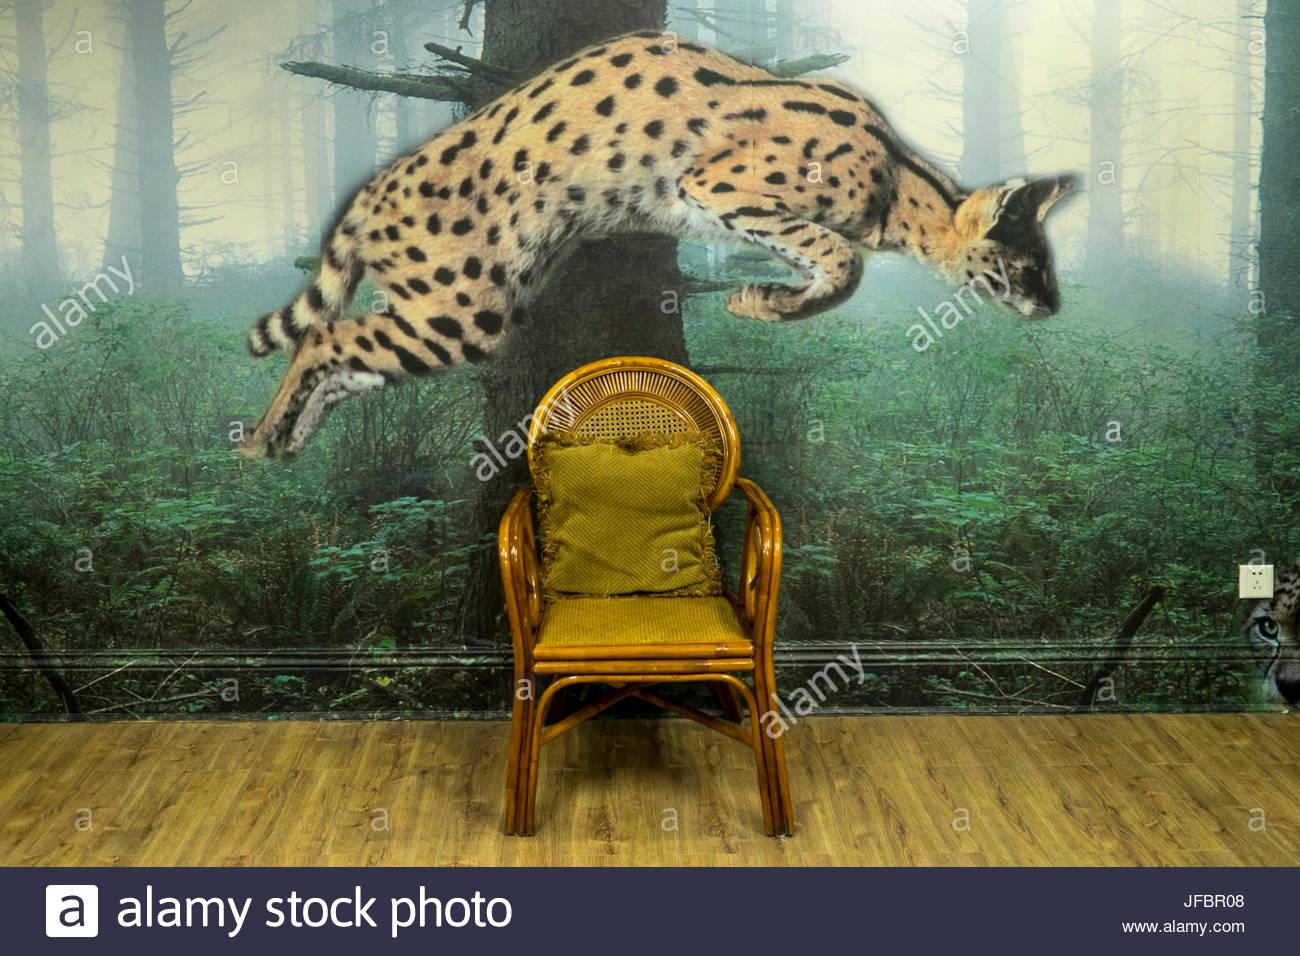 Wall paper of a leaping cat above a chair at the Chateau Laffitte Hotel. - Stock Image